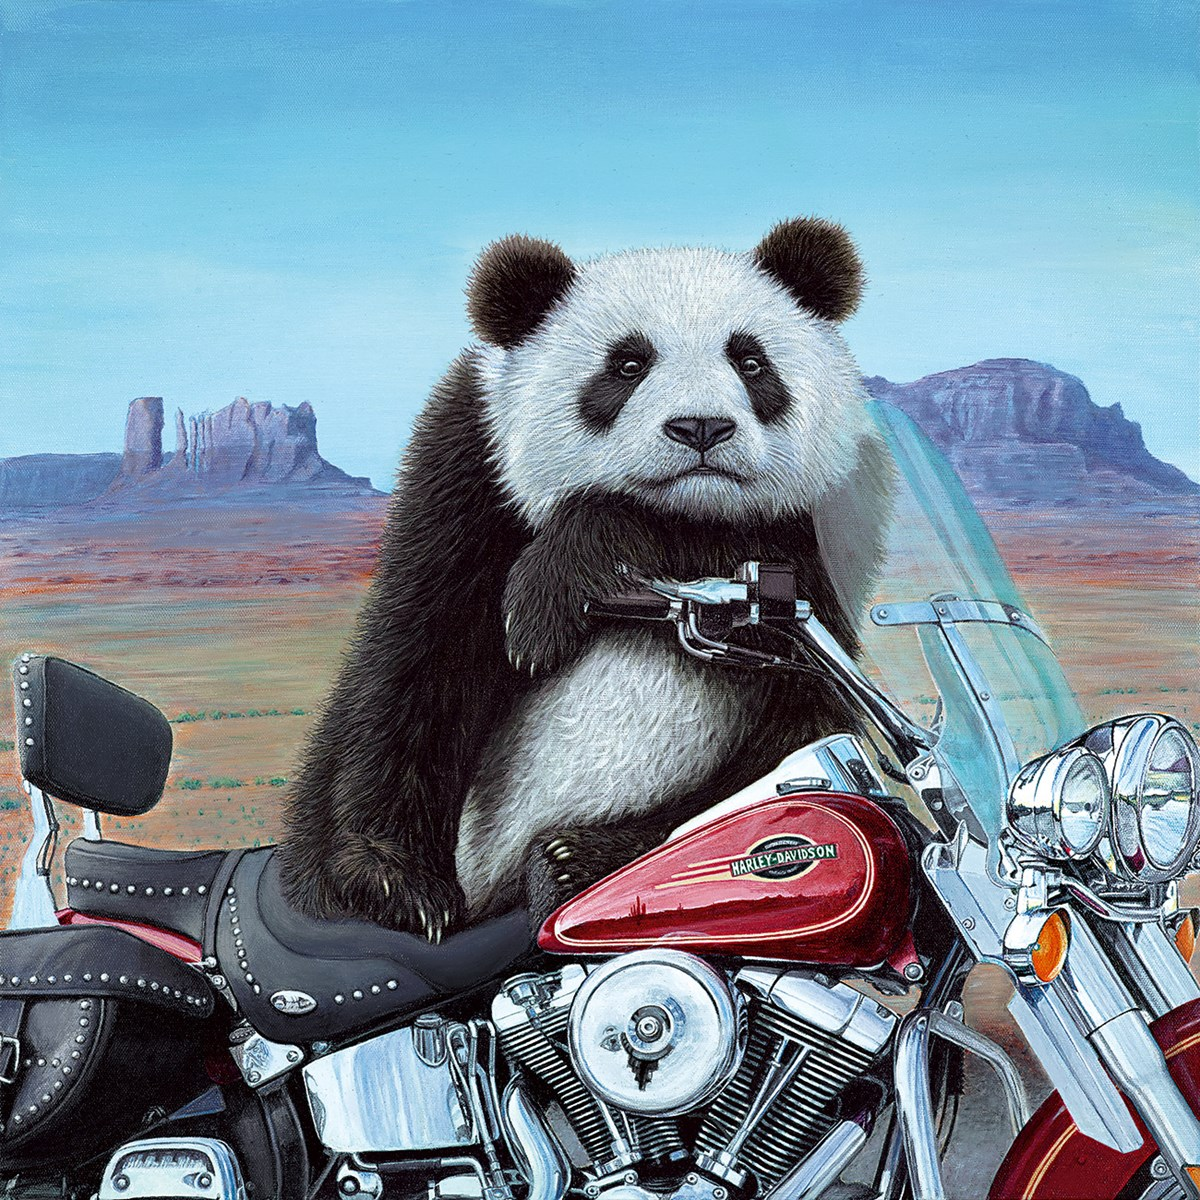 Born to be Wild by Steve Tandy